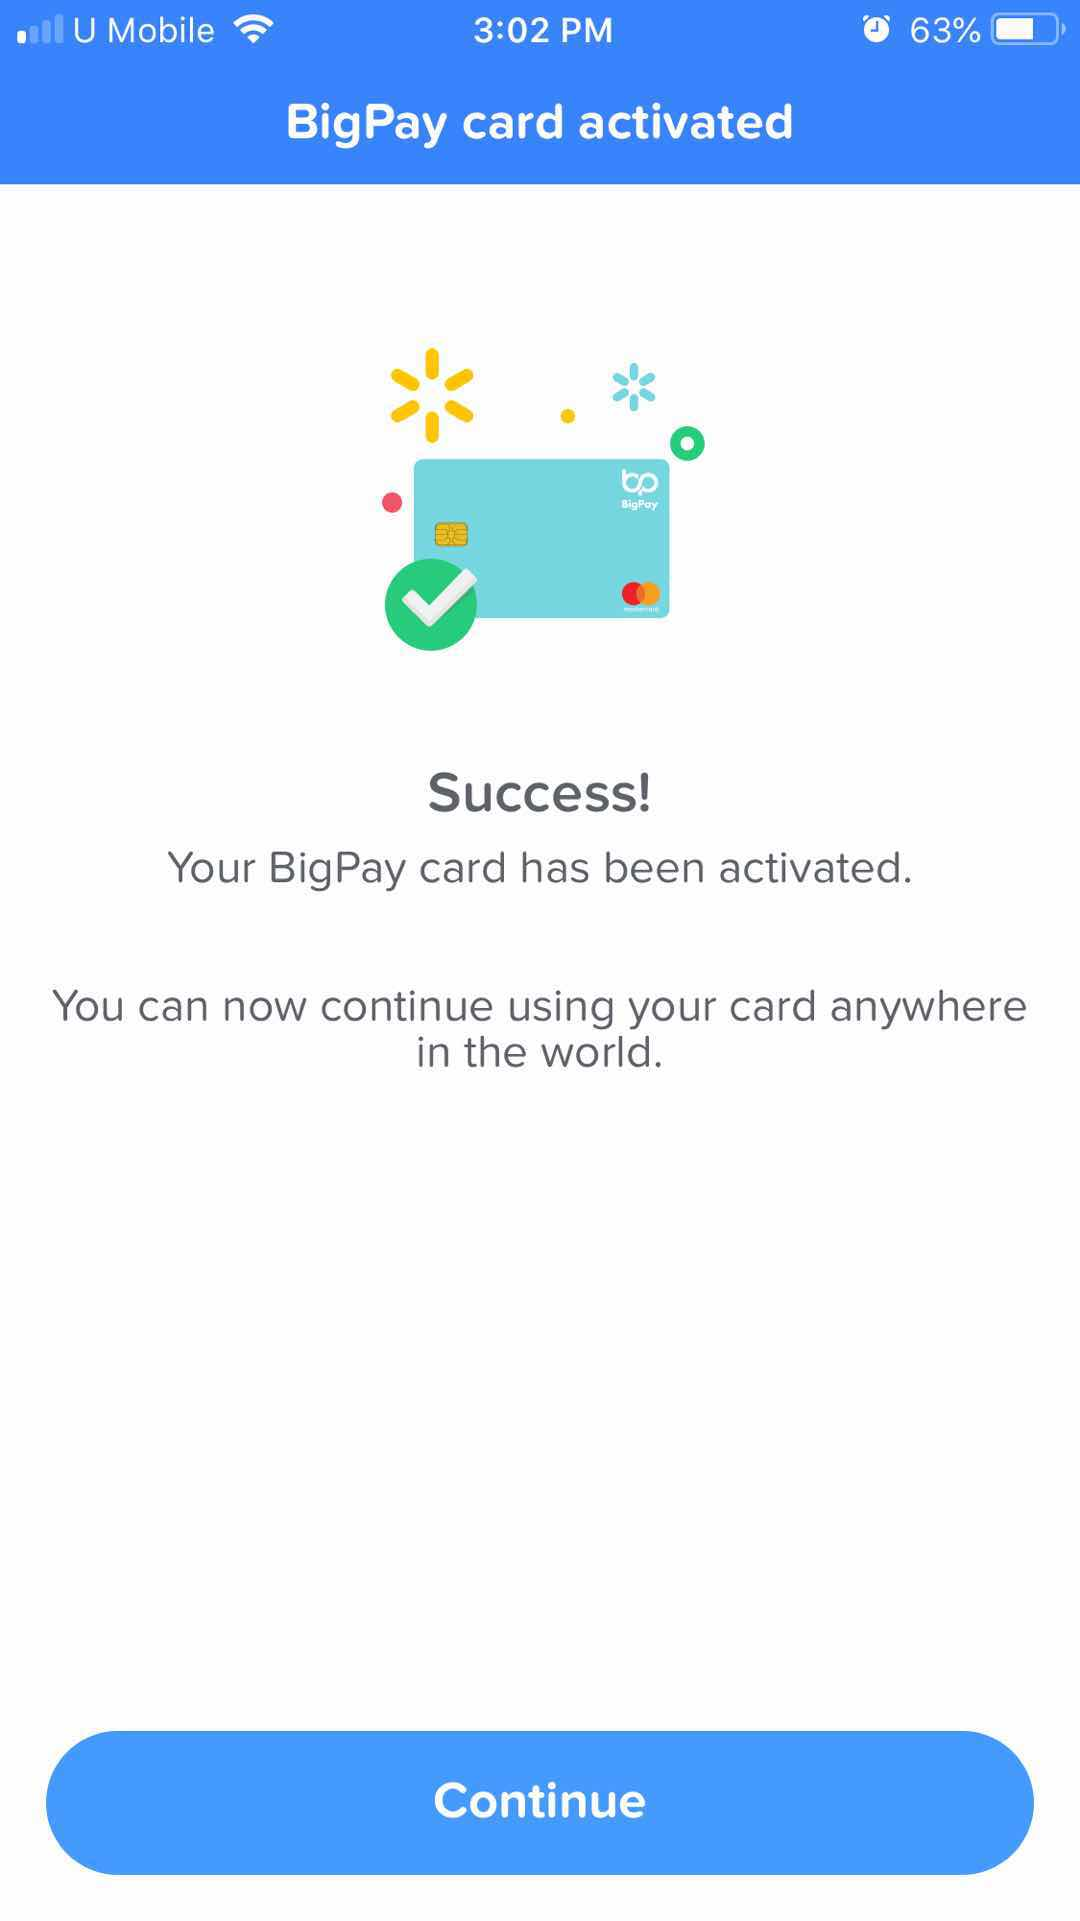 bigpay card activated paywave